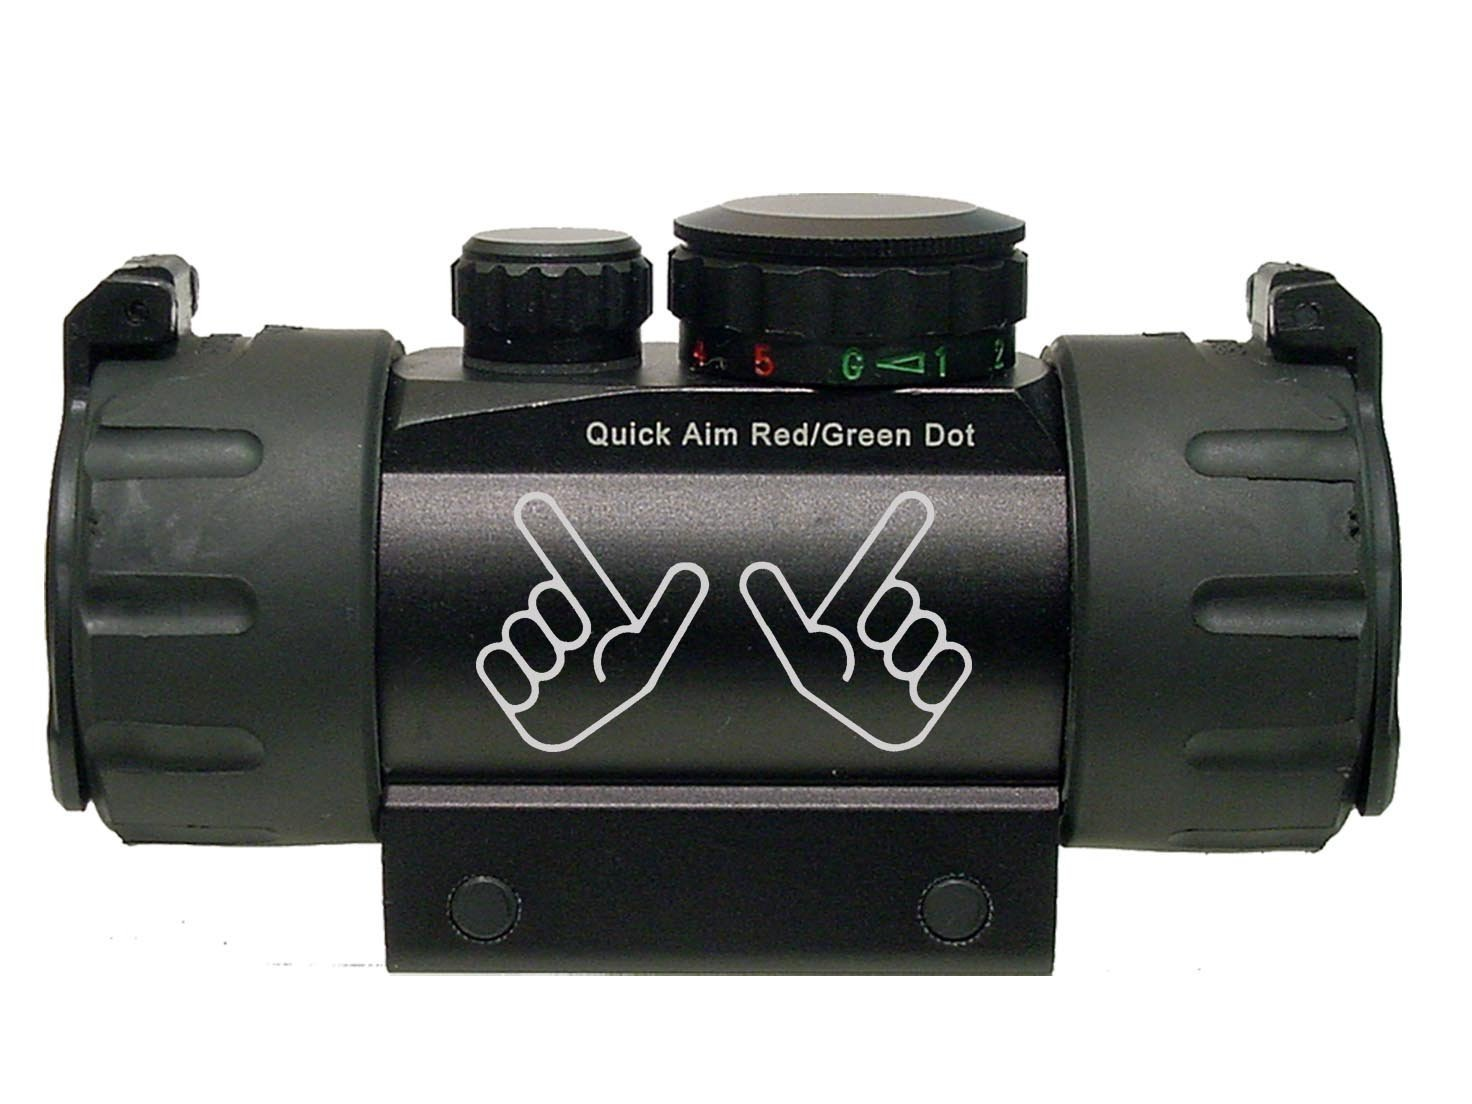 Red Raiders Guns Up Hand Symbol Texas Tech Engraved Leapers UTG Red or Green DOT CQB Tactical sight by NDZ Performance